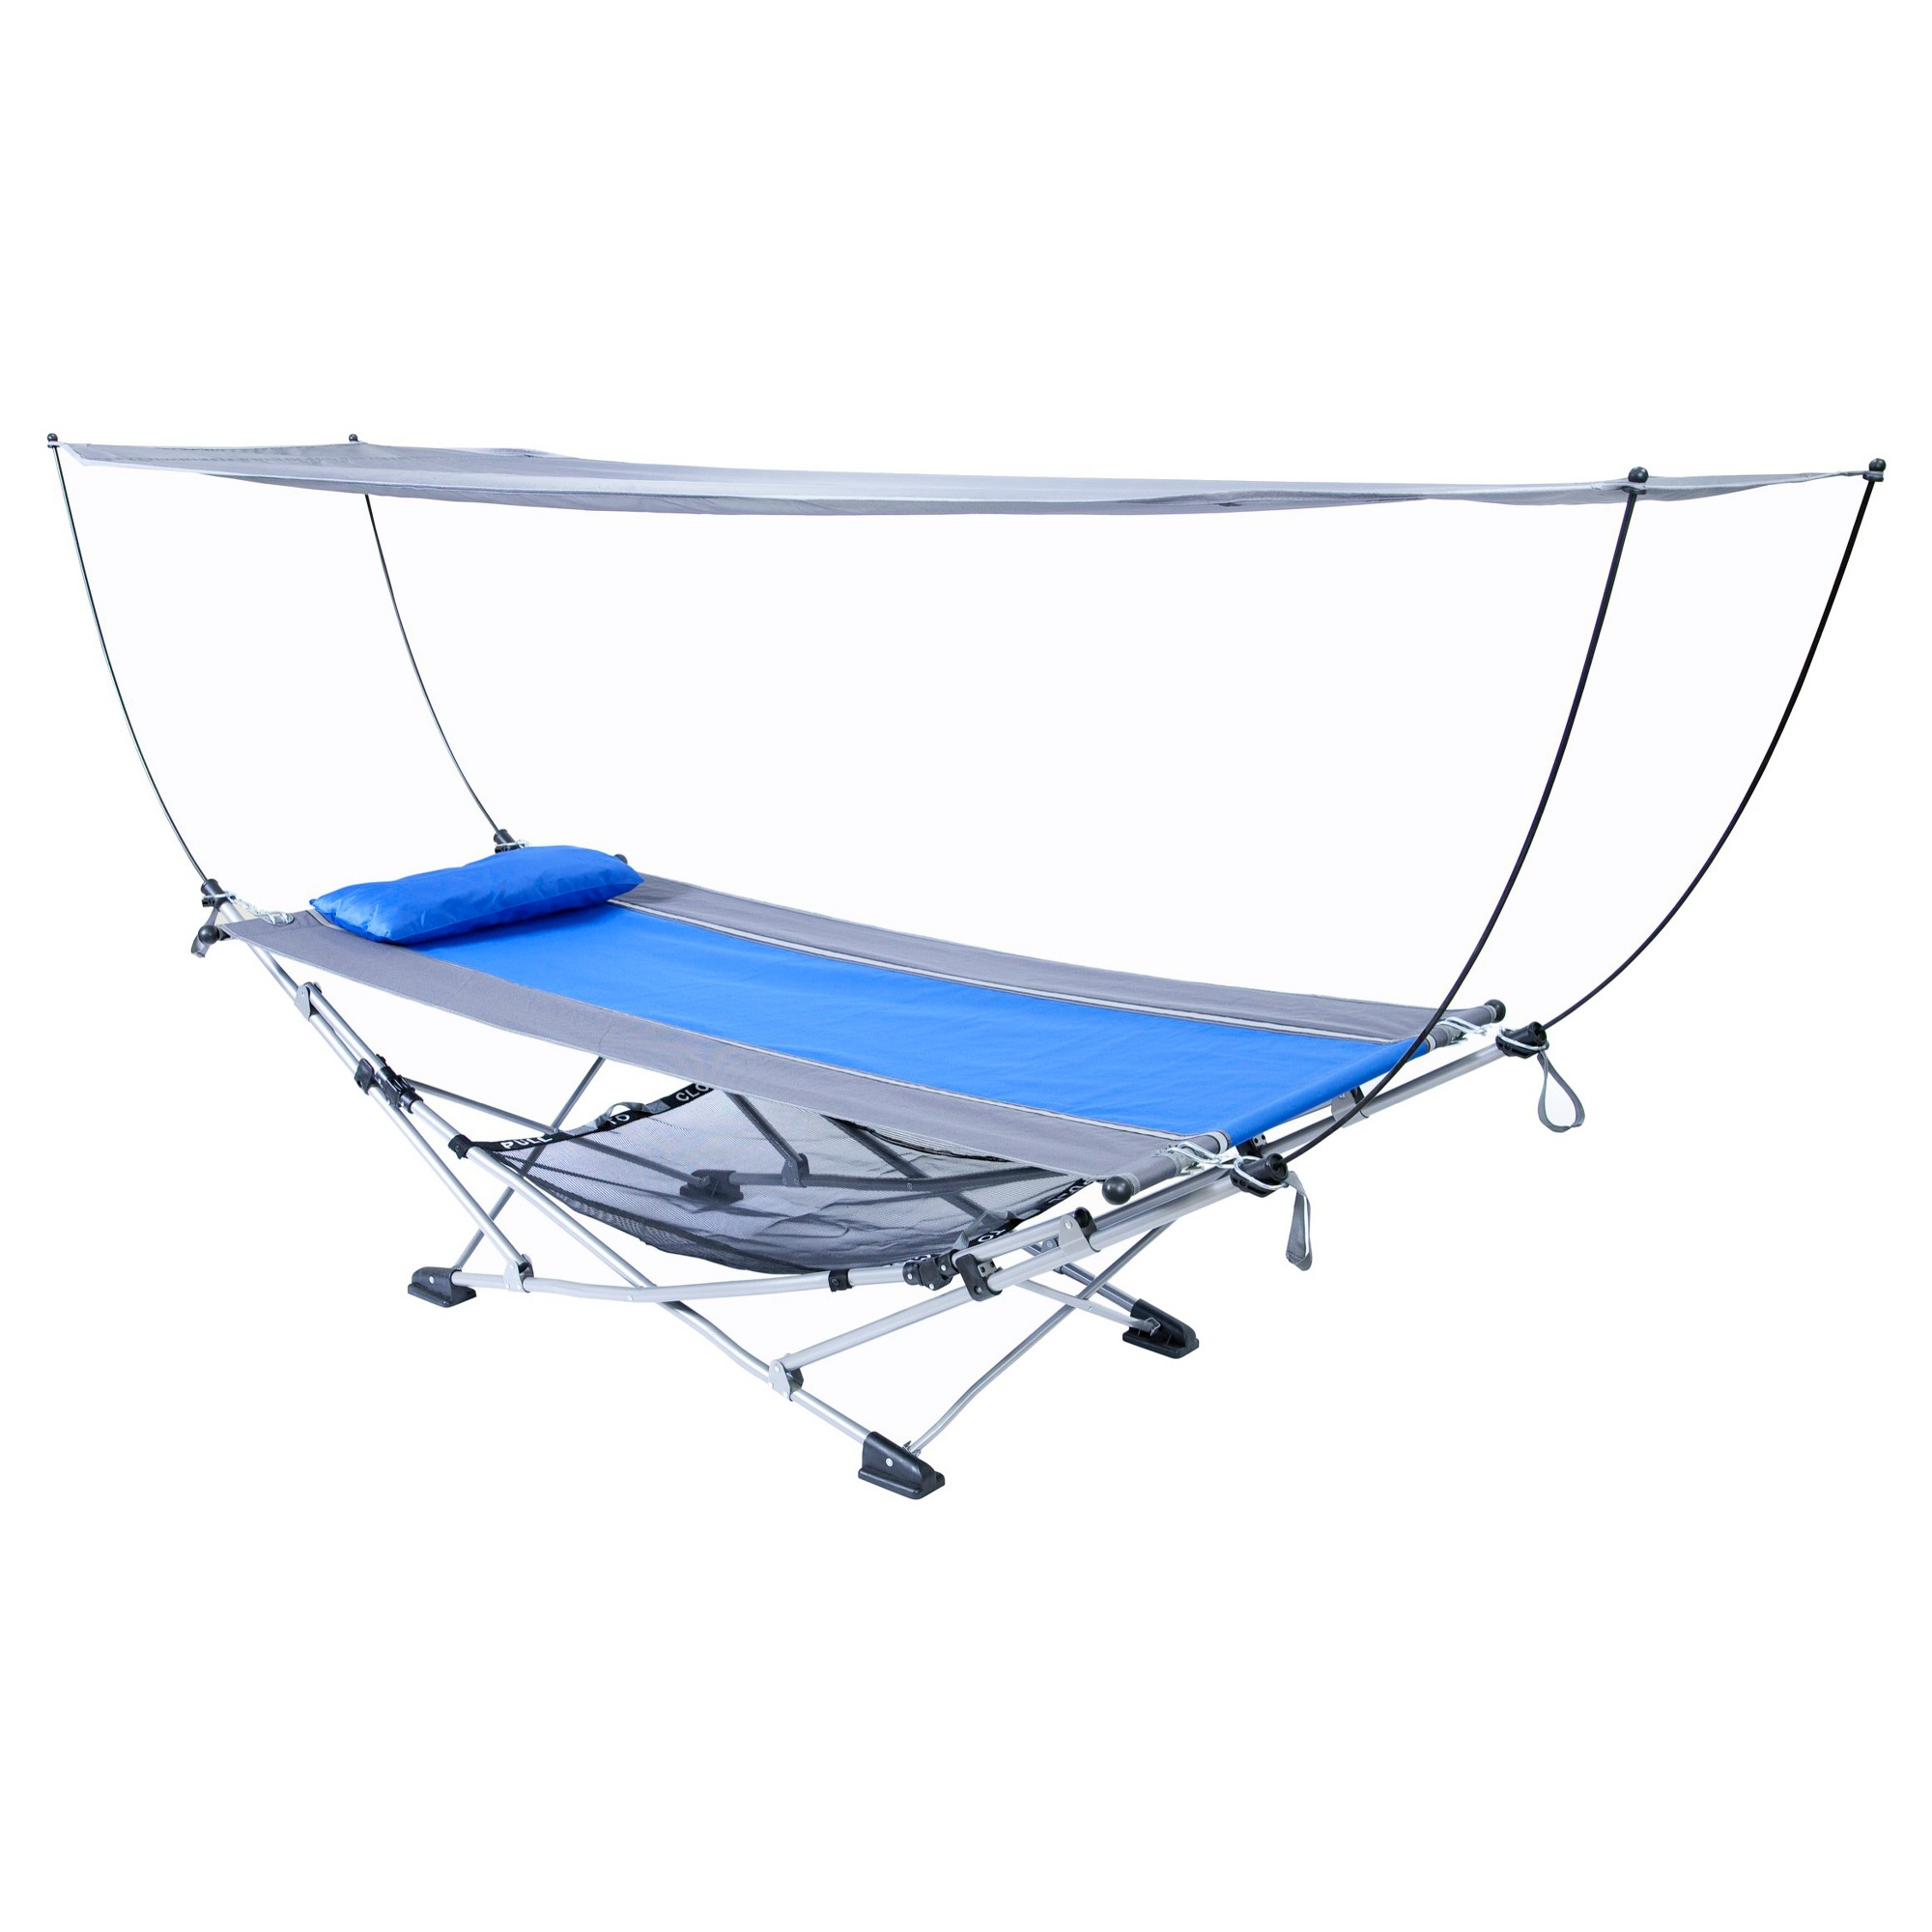 Ace Hardware Mac Sports Hammock With Canopy Blue Stand Portable